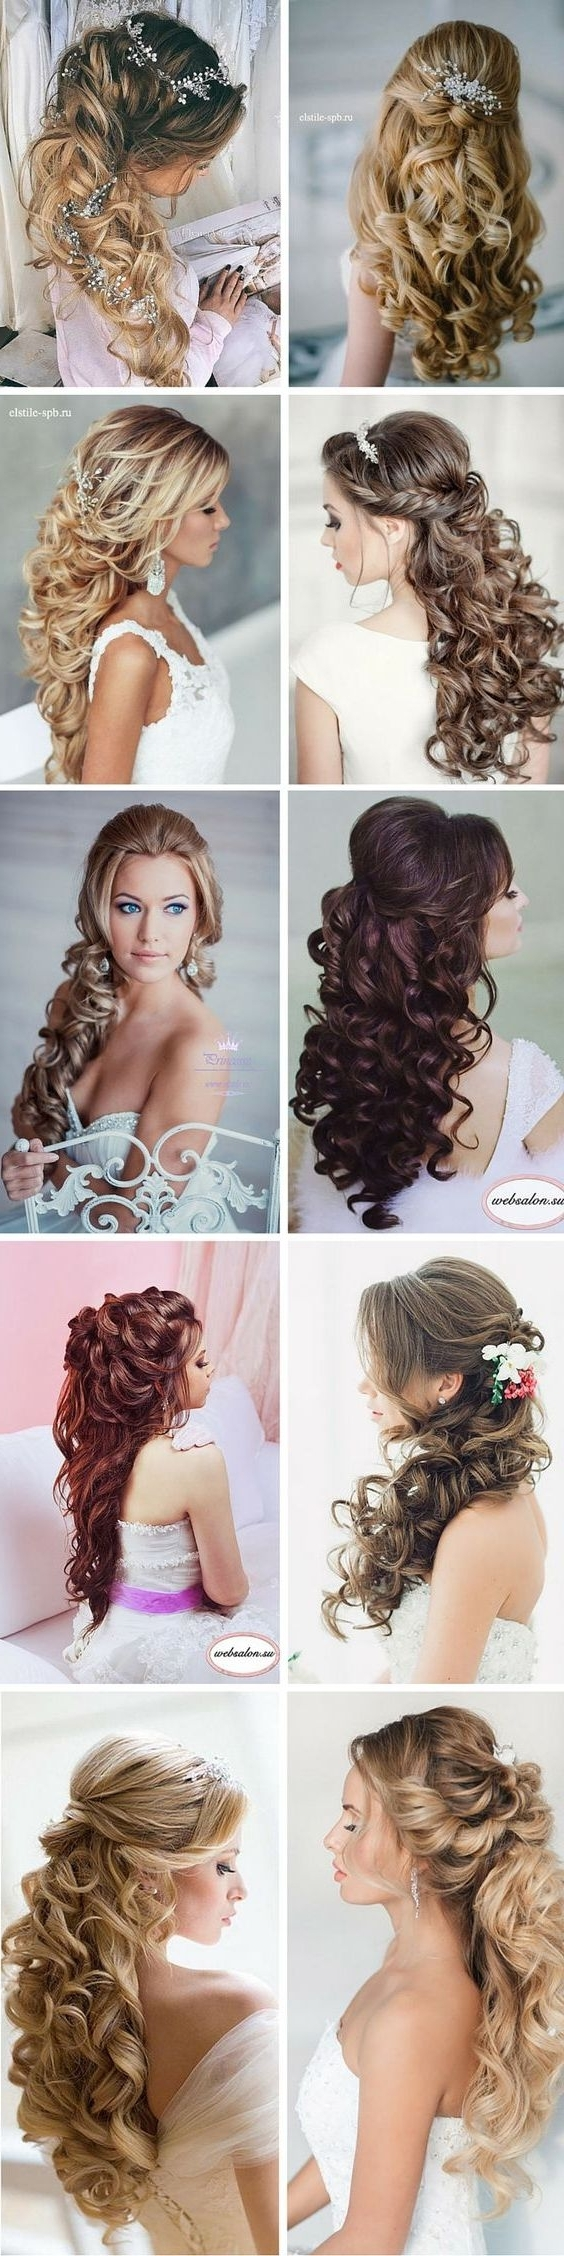 100+ Romantic Long Wedding Hairstyles 2018 – Curls, Half Up, Updos Within Popular Put Up Wedding Hairstyles (View 15 of 15)